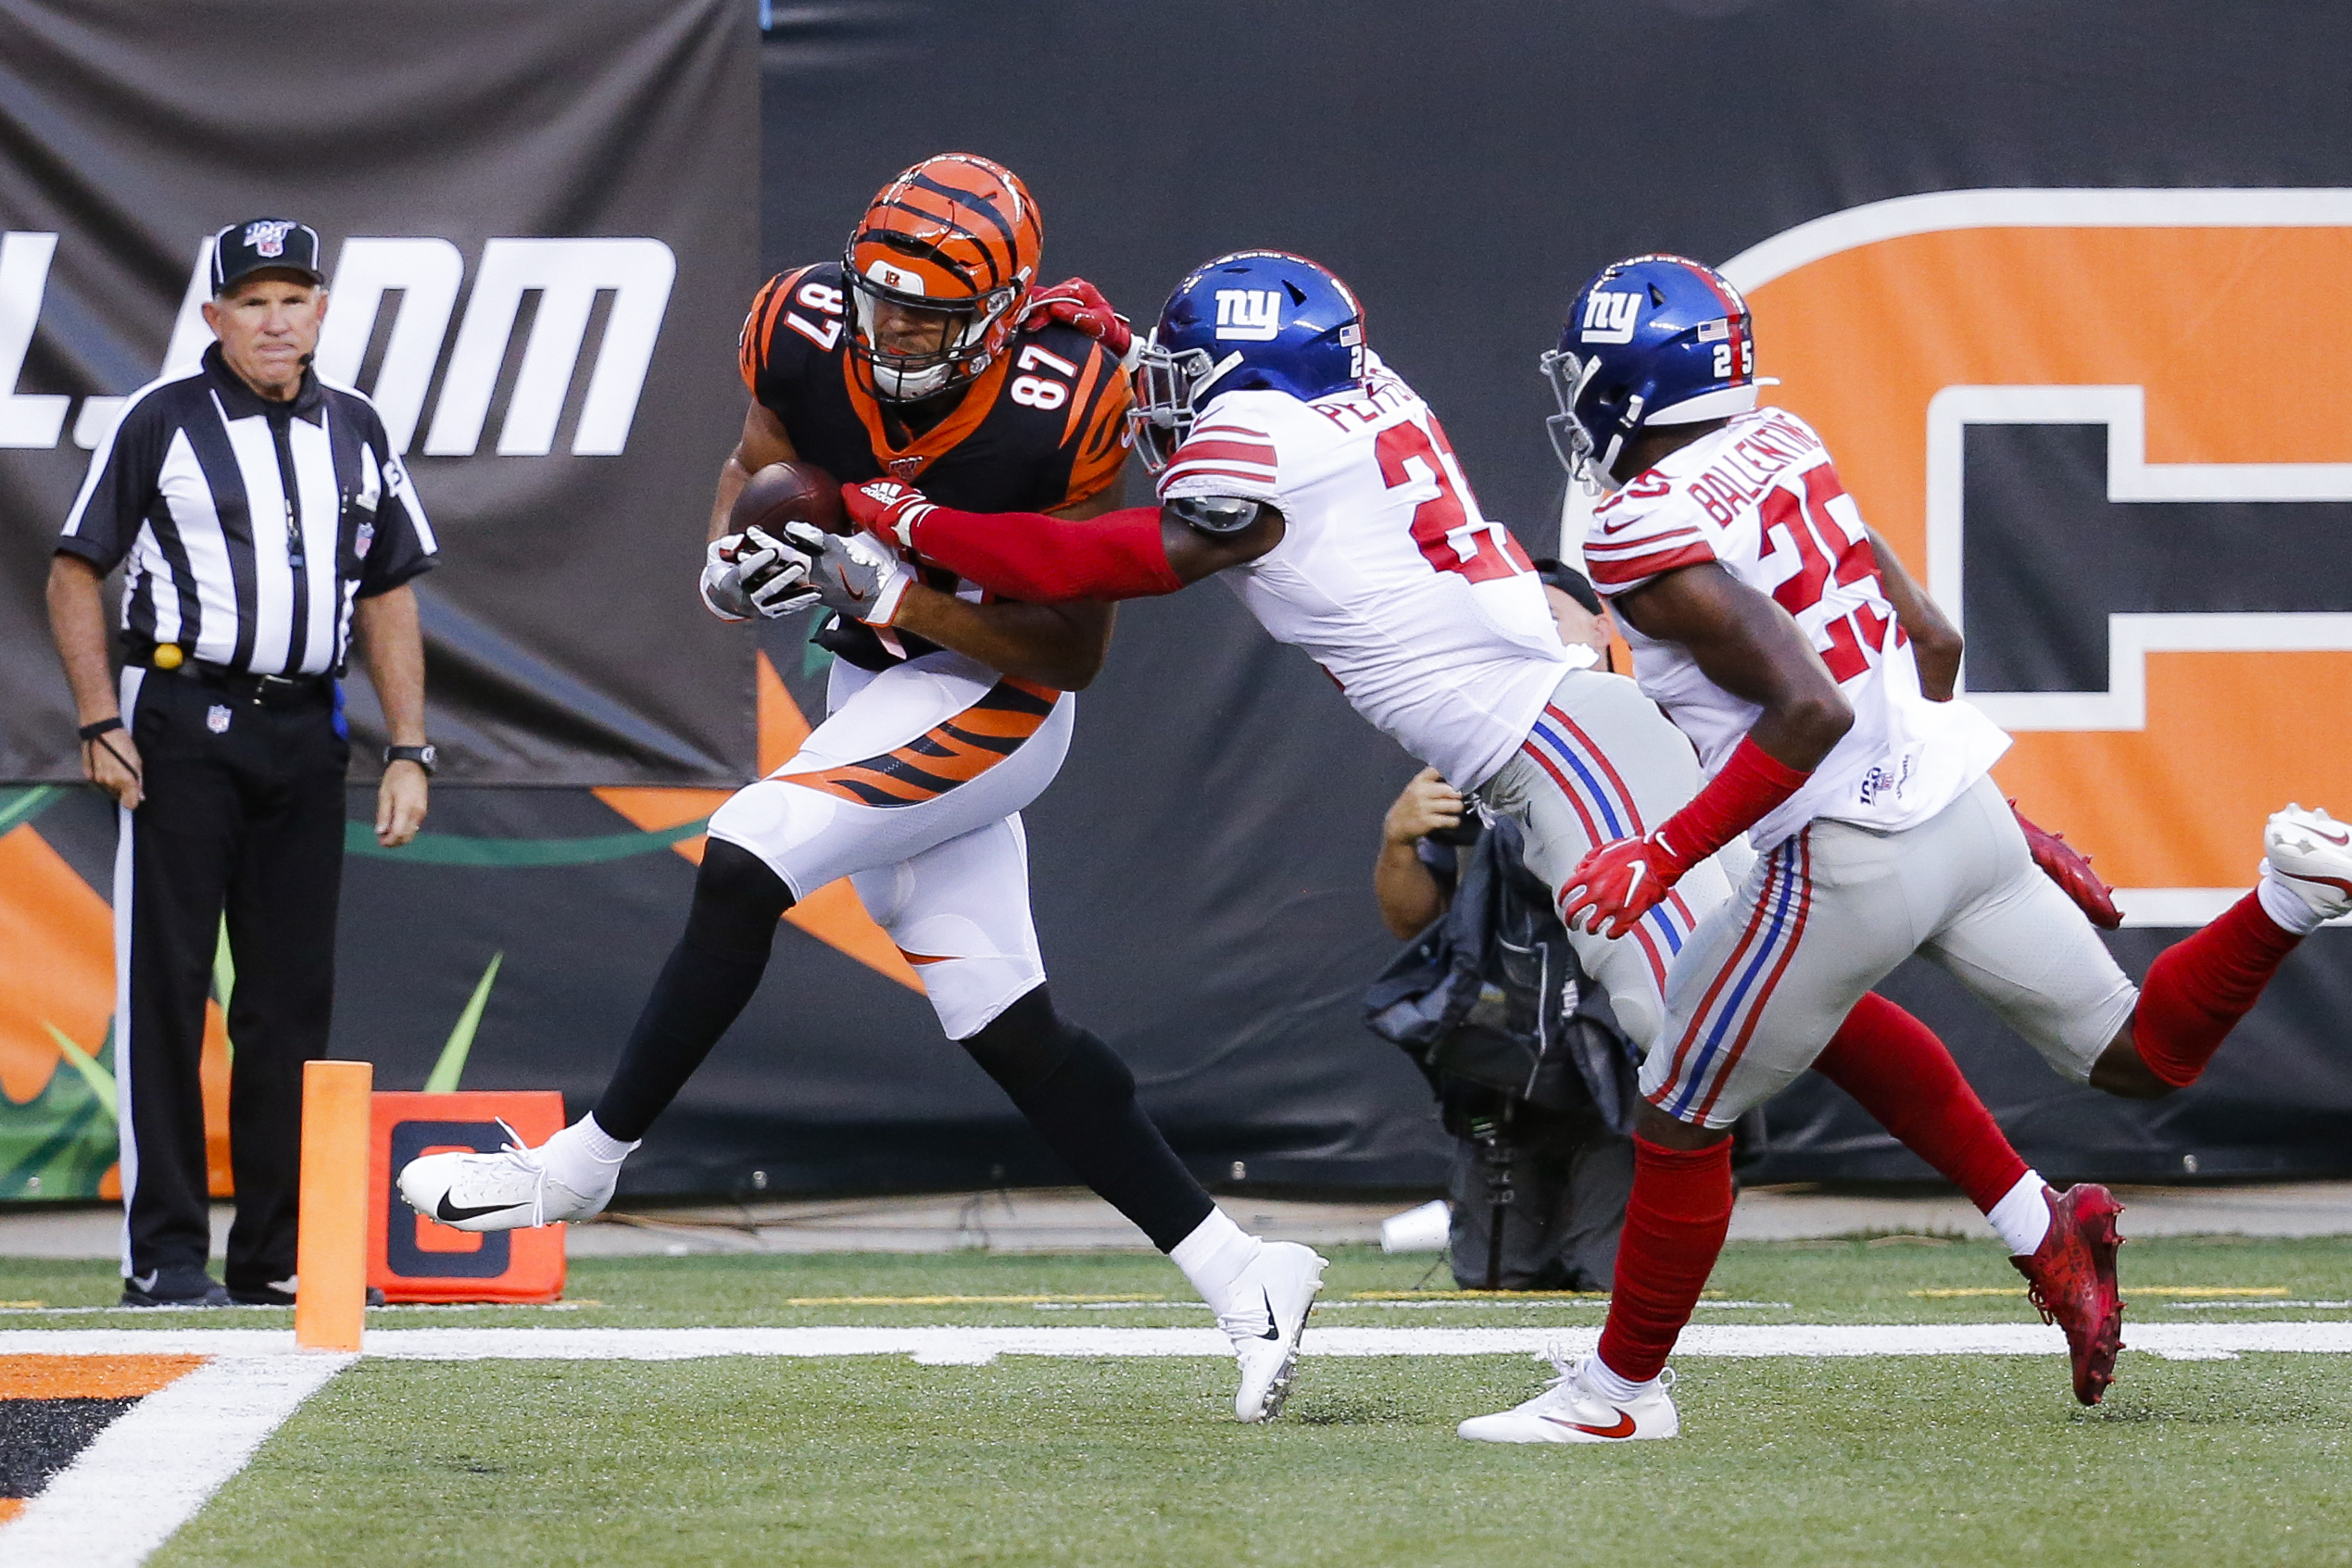 9 observations on Giants starters: Jabrill Peppers or Landon Collins? Offensive line wins battles vs. Bengals